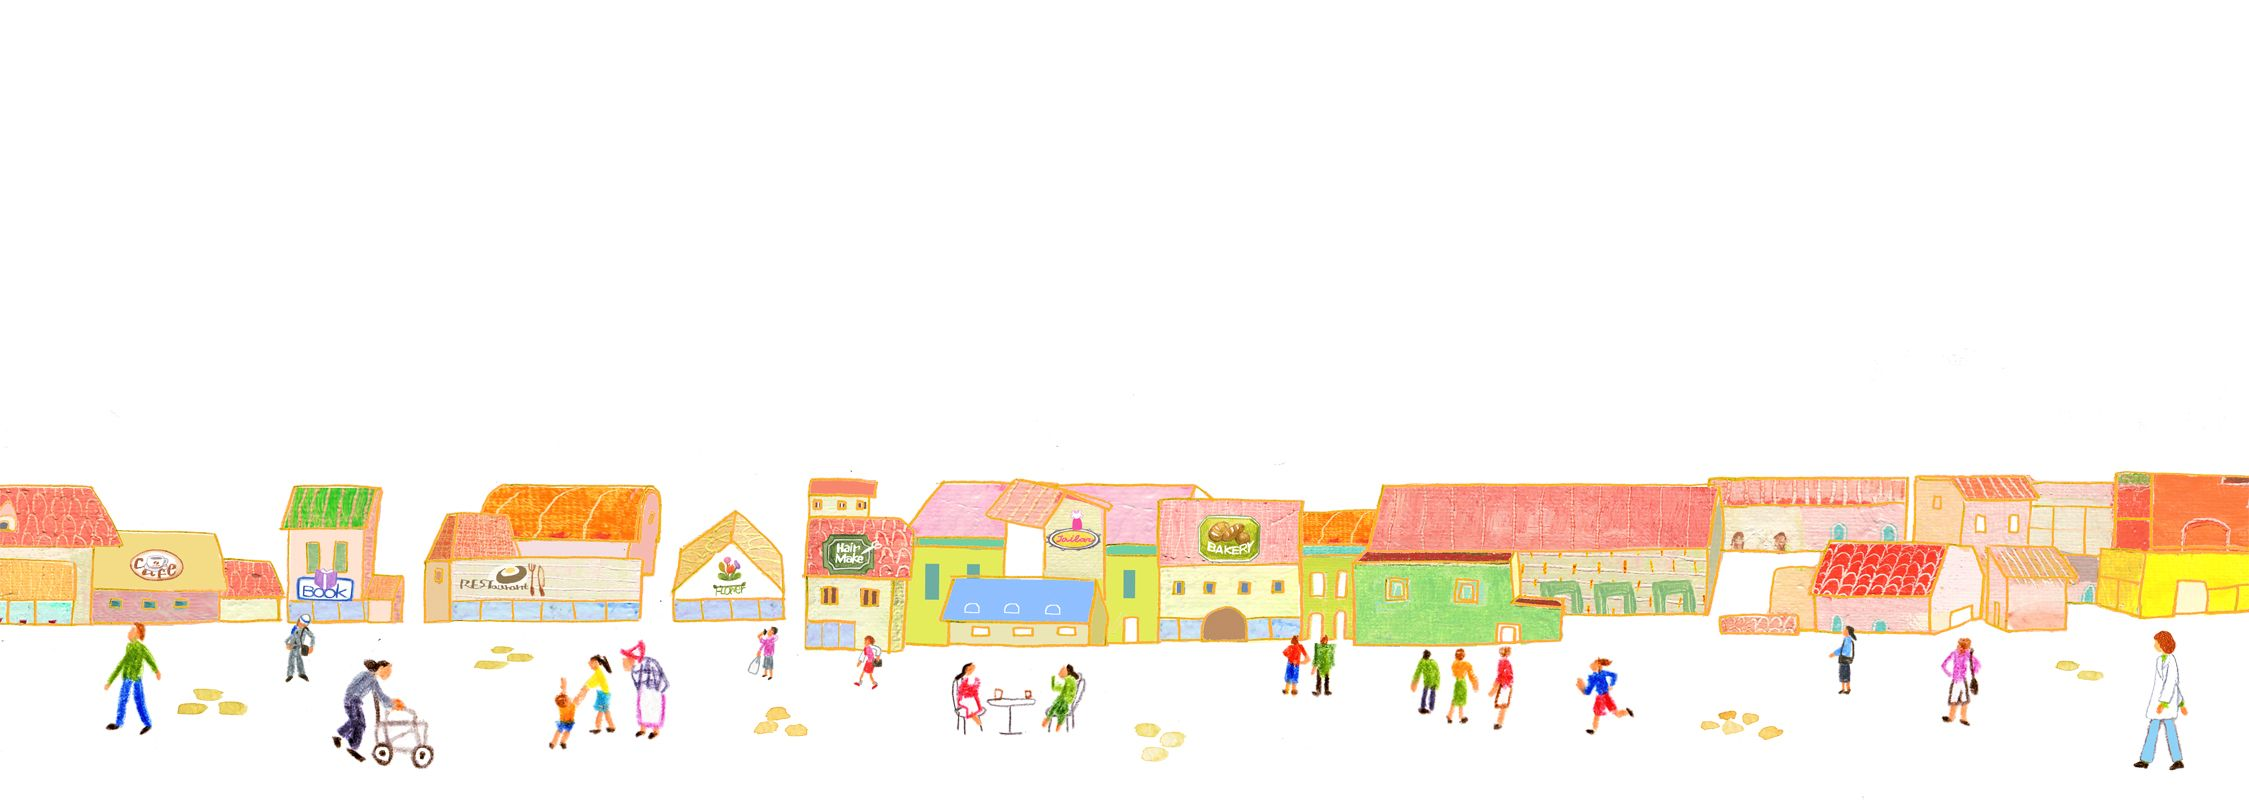 City Town Person Cute House Illustration 街 町 人 かわいい 家